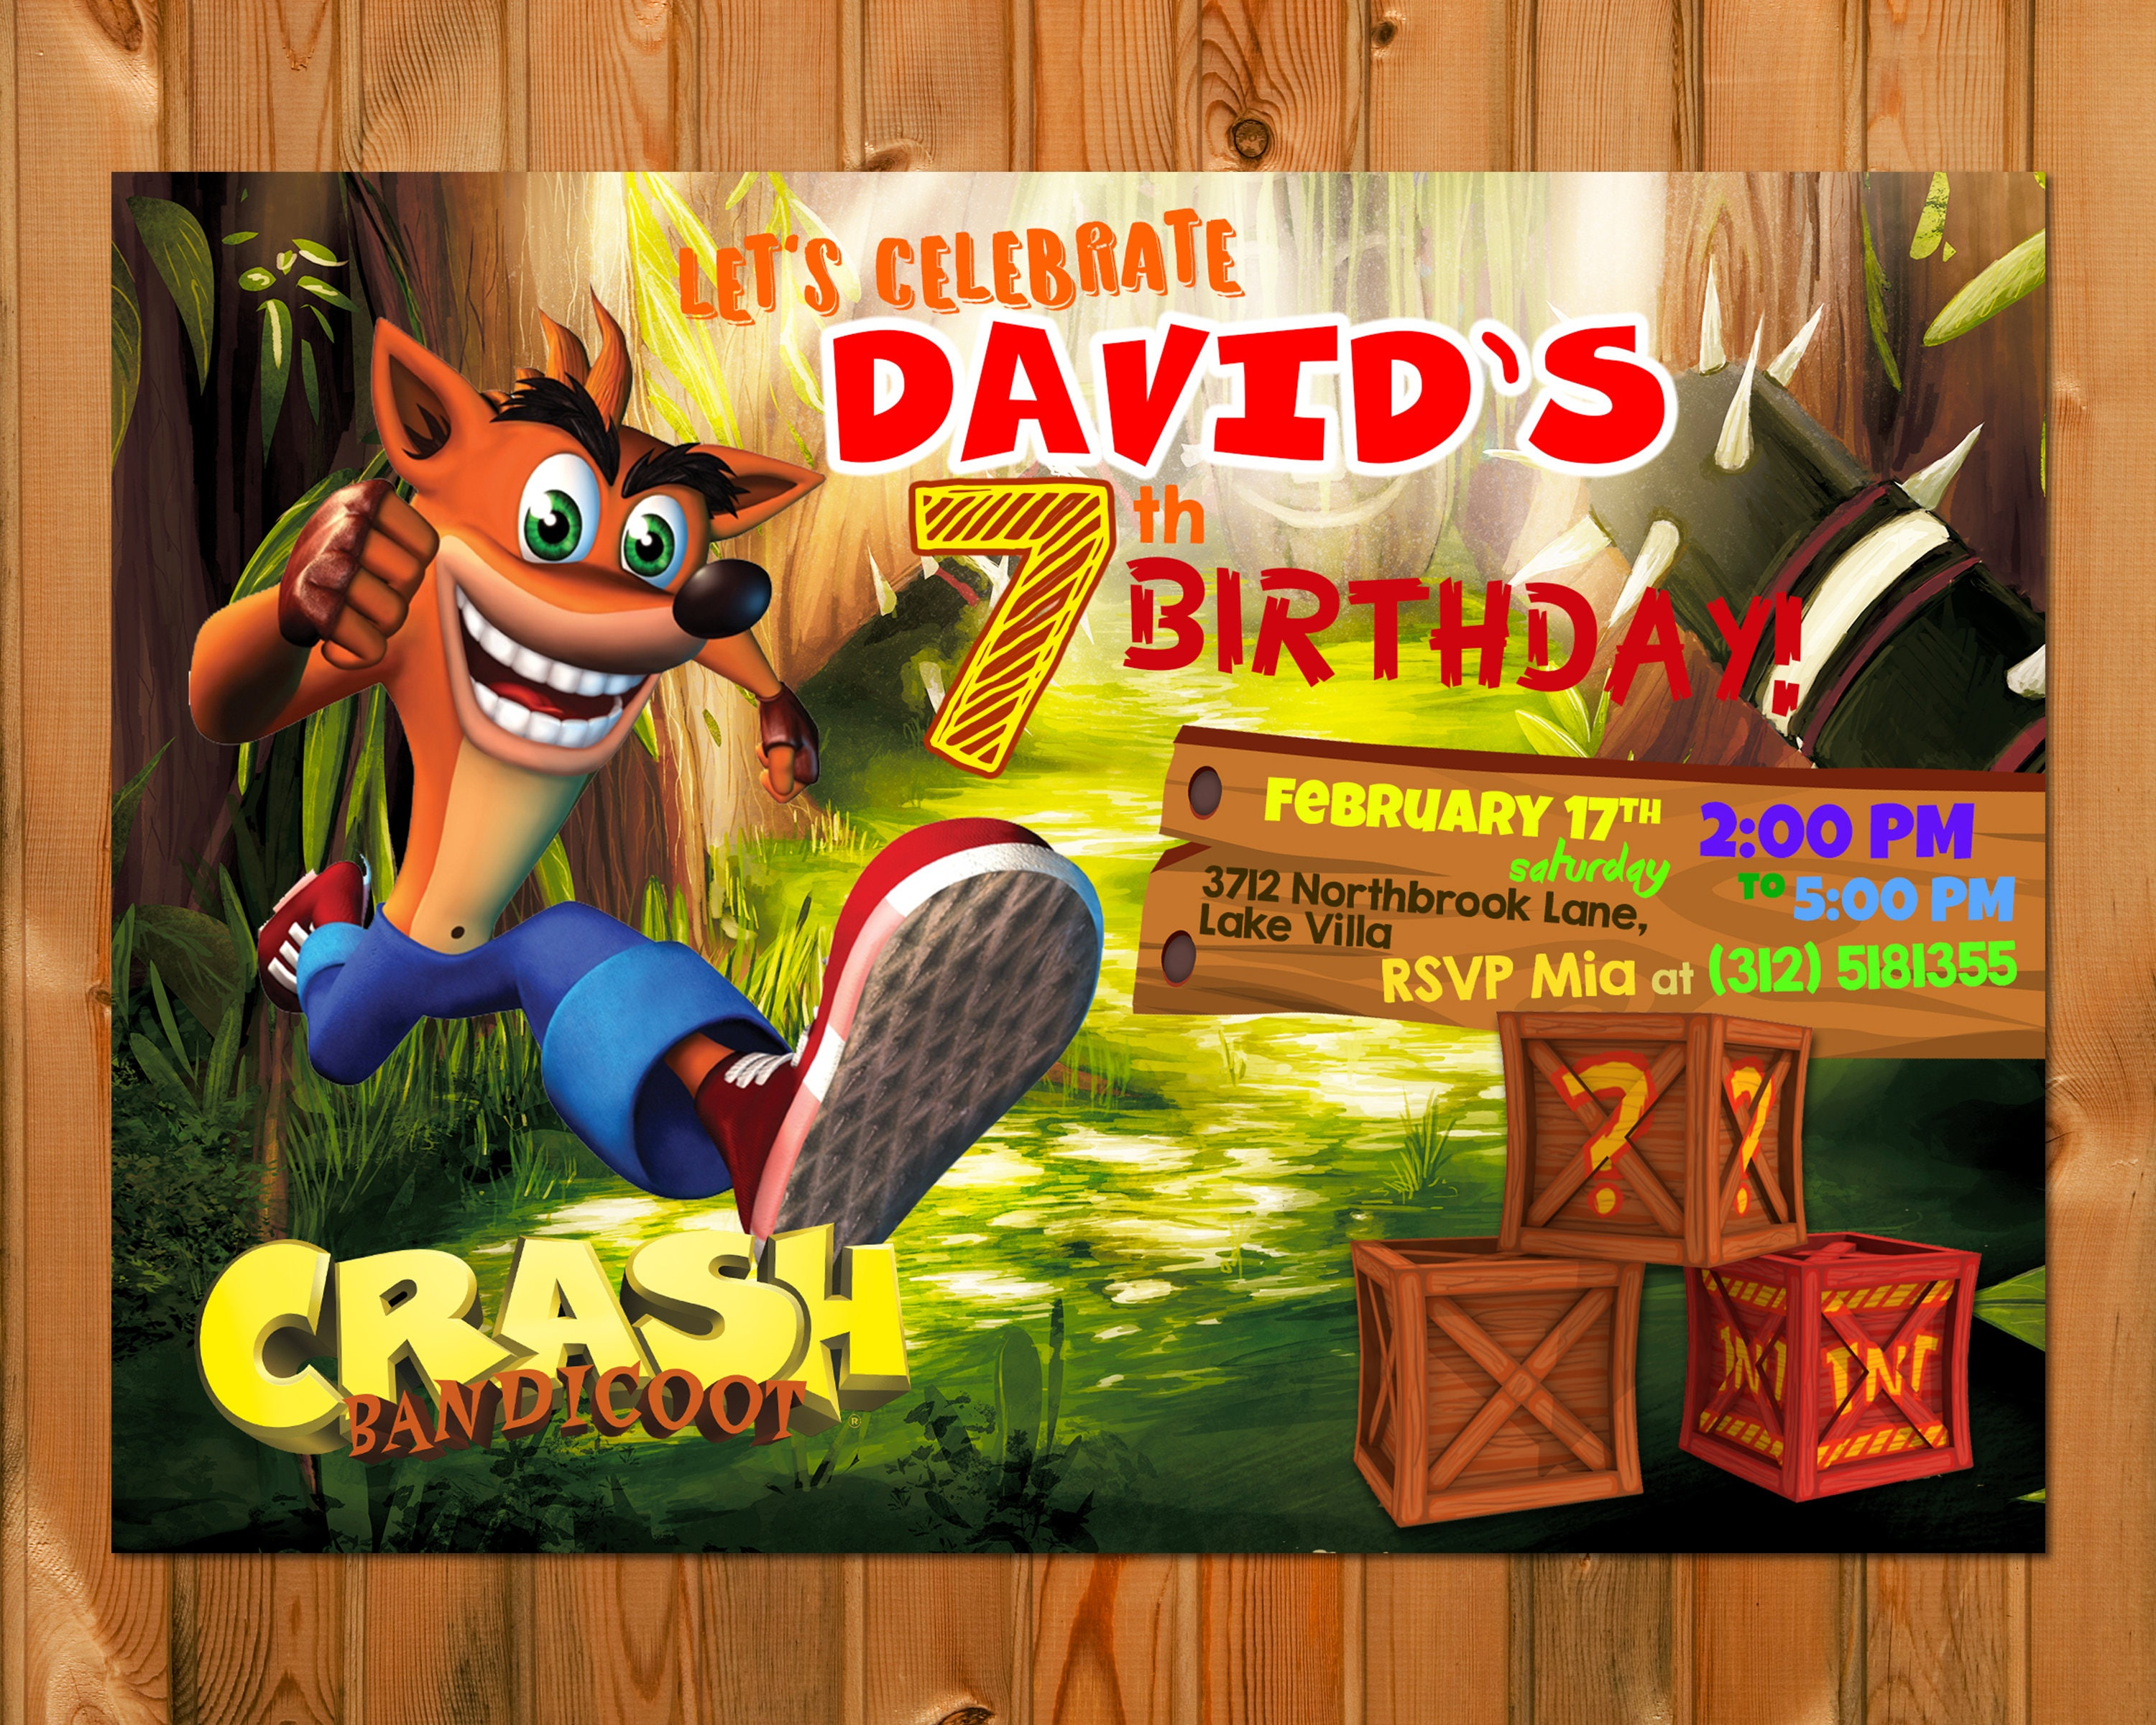 Crash Bandicoot Birthday Invitation Crash Bandicoot Party Etsy